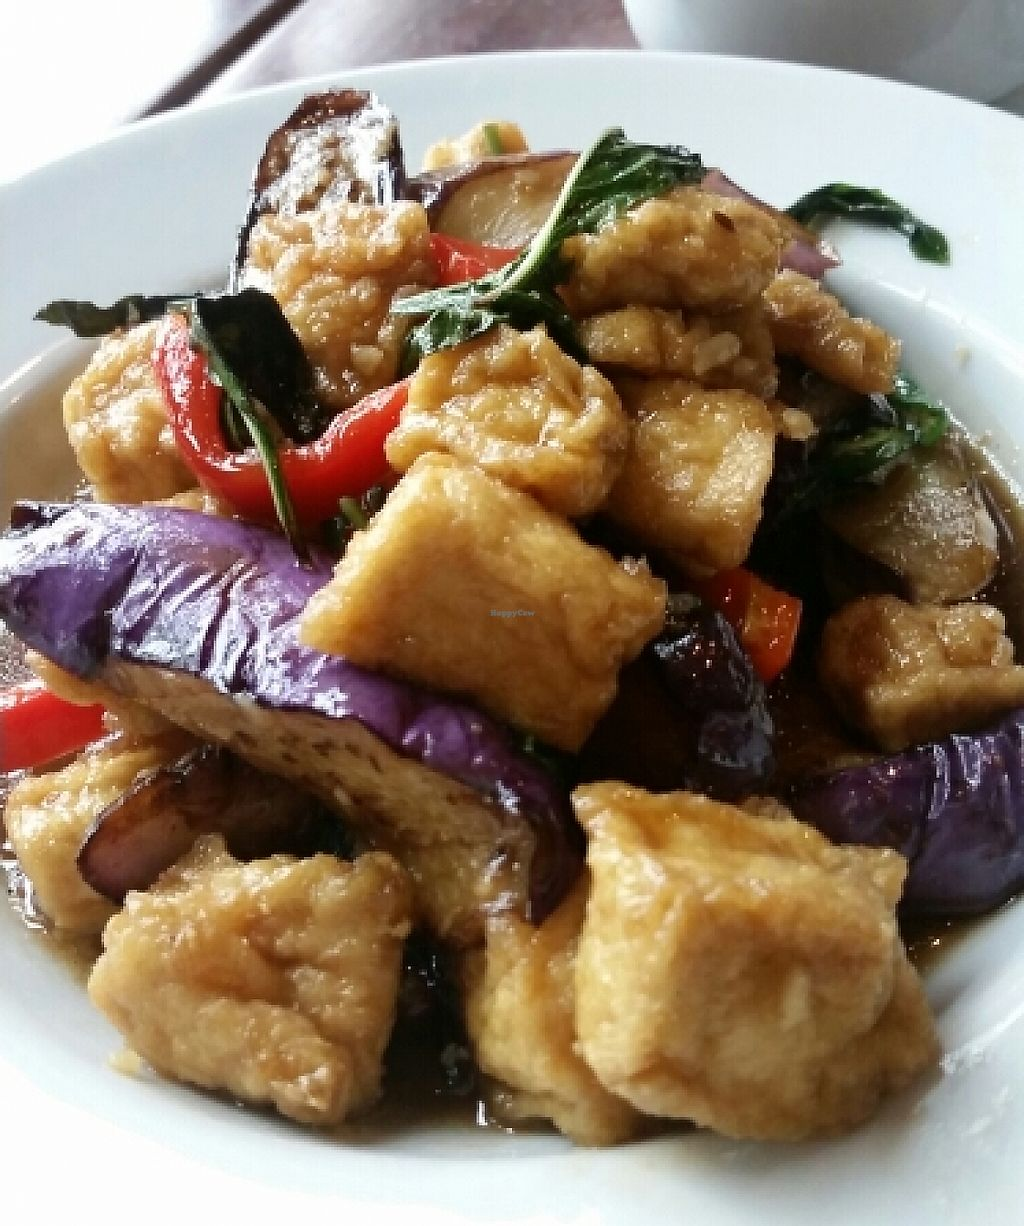 "Photo of Sabai Sabai Simply Thai  by <a href=""/members/profile/lazylimabean"">lazylimabean</a> <br/>Chili Eggplant Tofu <br/> May 21, 2016  - <a href='/contact/abuse/image/35838/202052'>Report</a>"